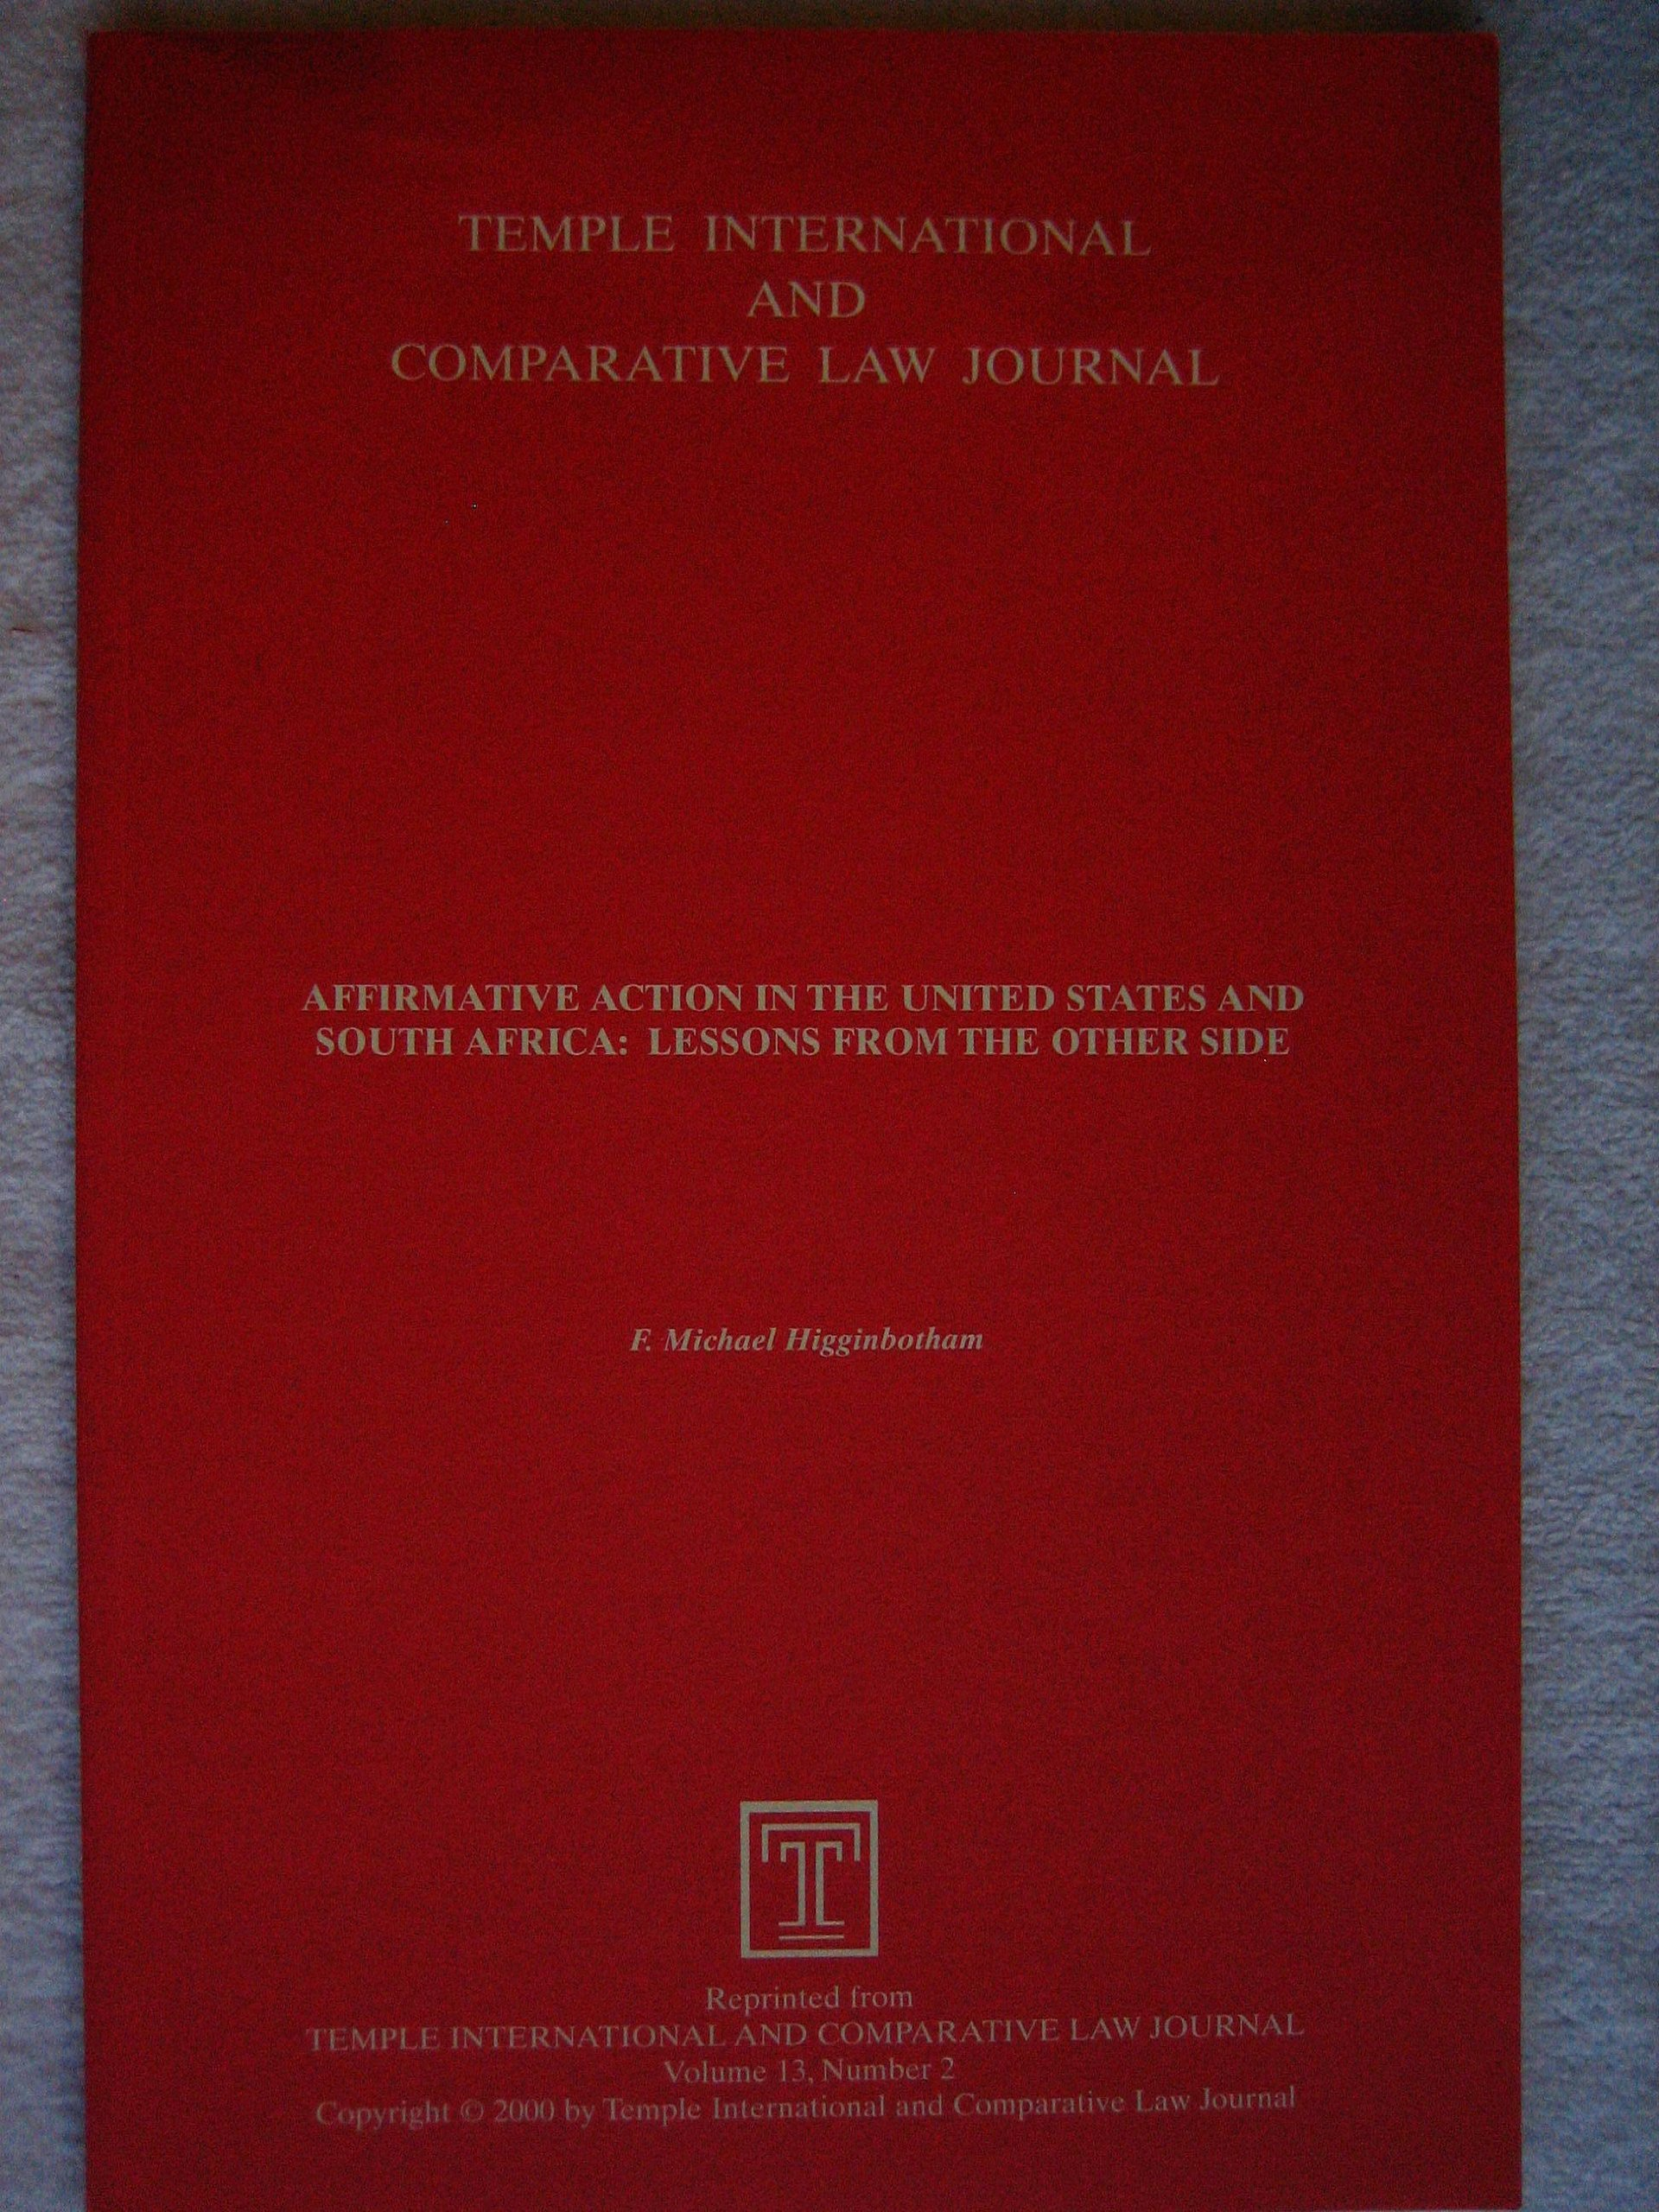 Temple International and Comparative Law Journal